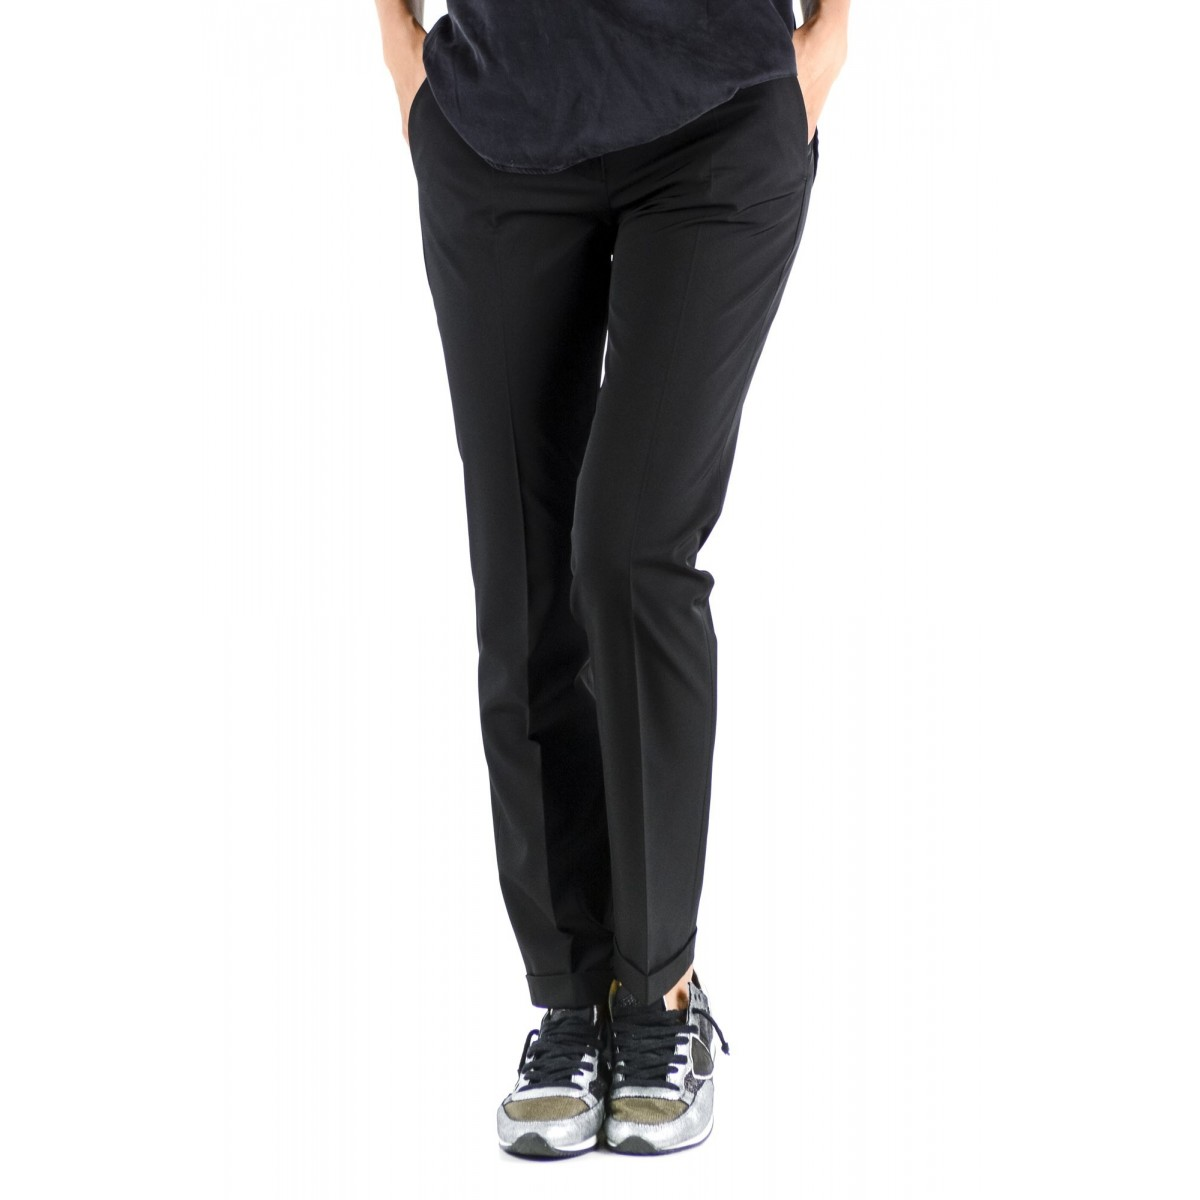 Trousers Incotex Woman - 172516 D4428 Leyre